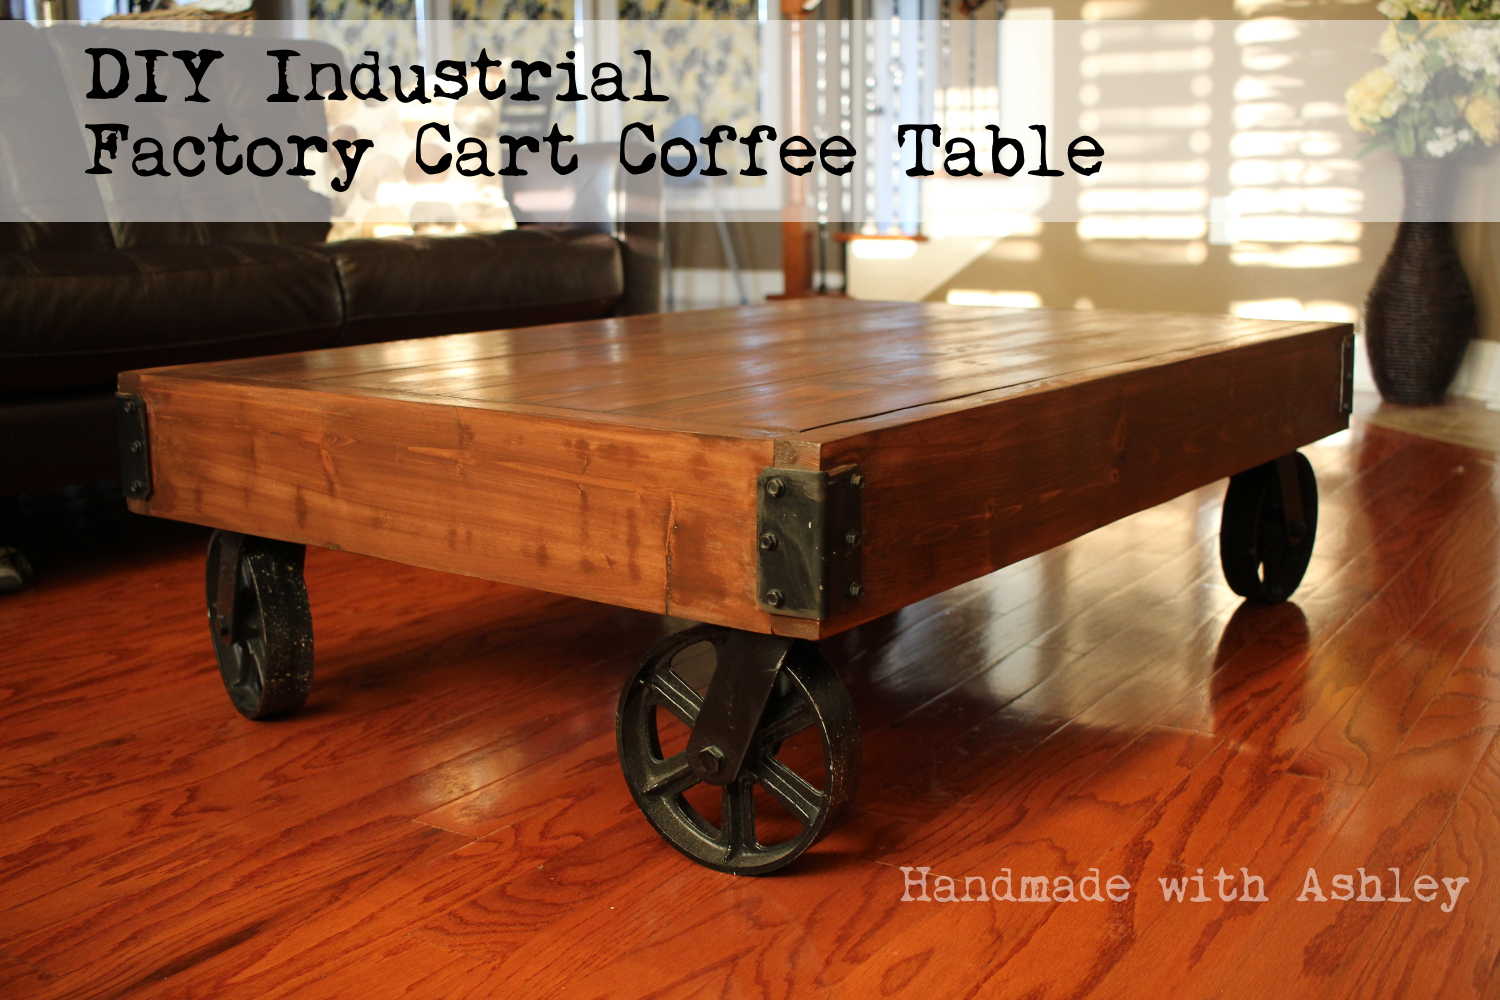 Geeky Coffee Tables Diy Industrial Factory Cart Coffee Table Plans By Rogue